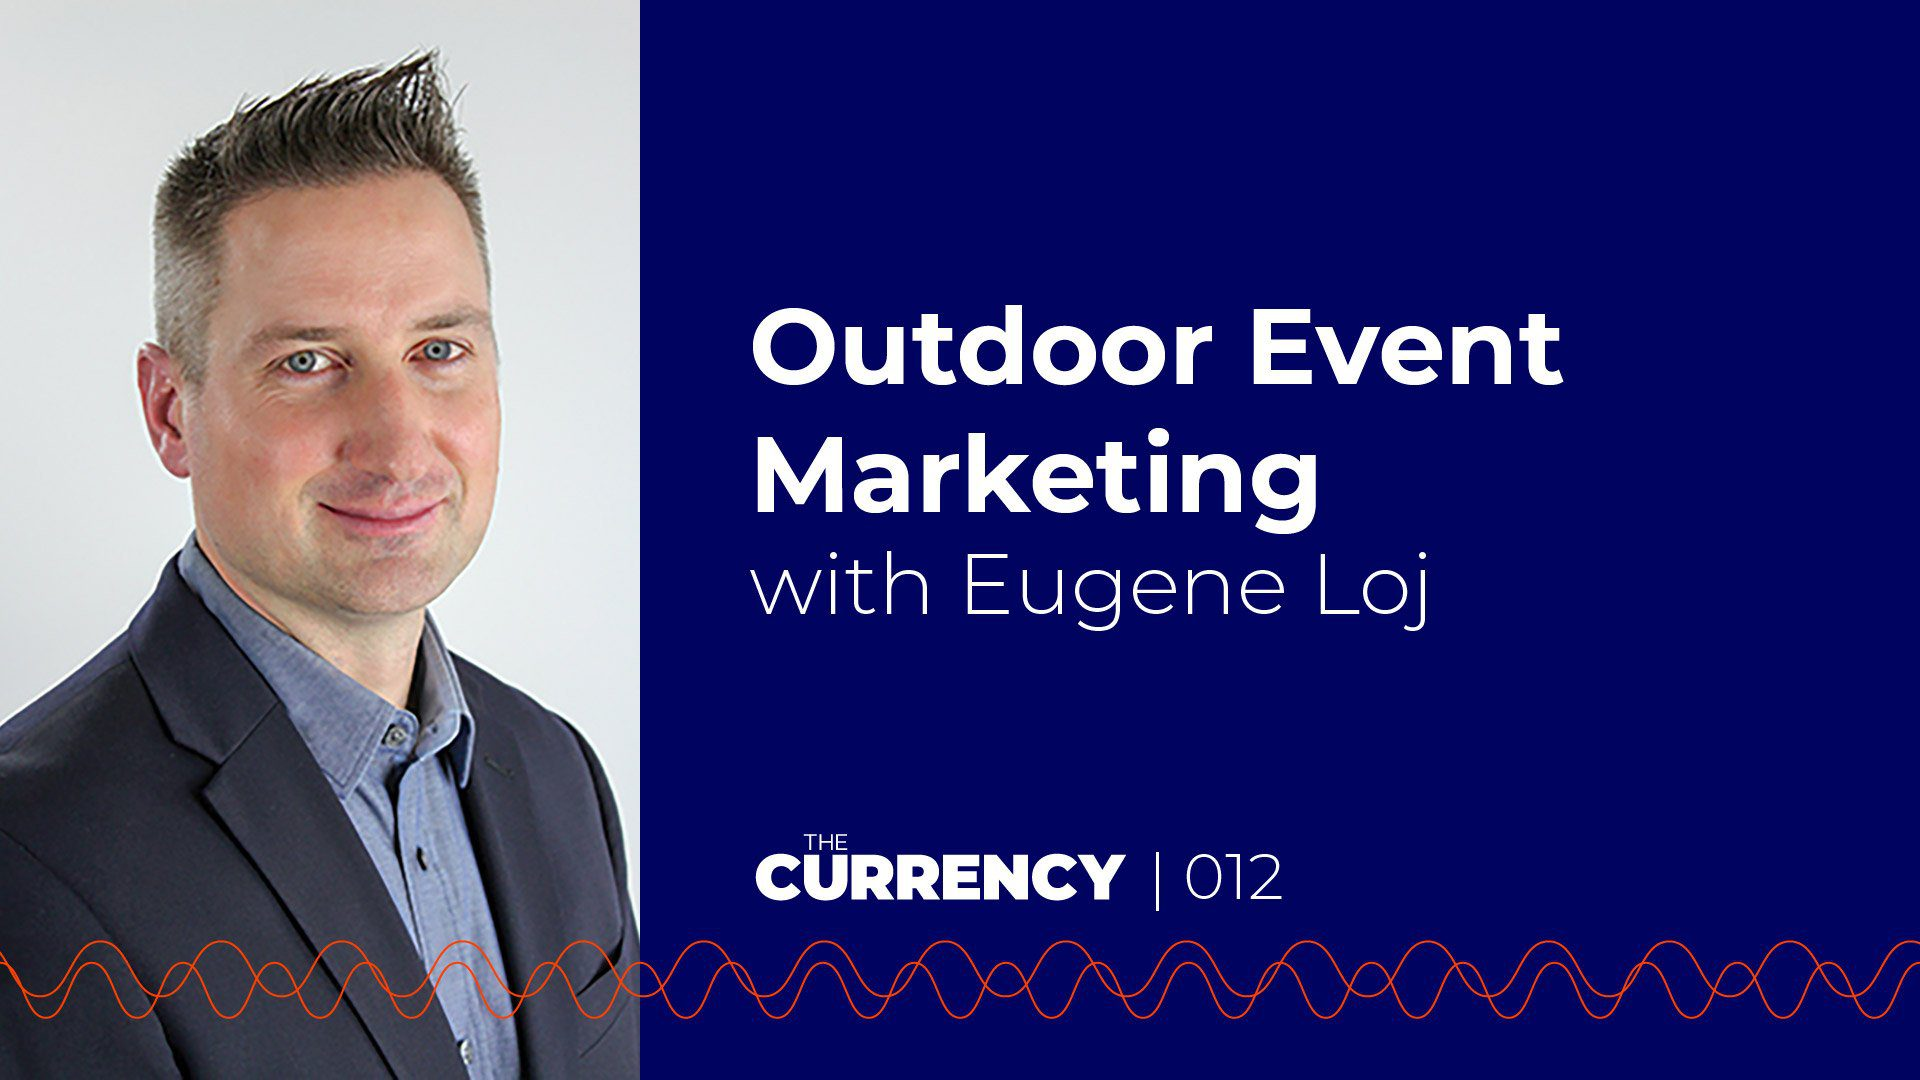 The Currency: [012] Outdoor Event Marketing with Eugene Loj